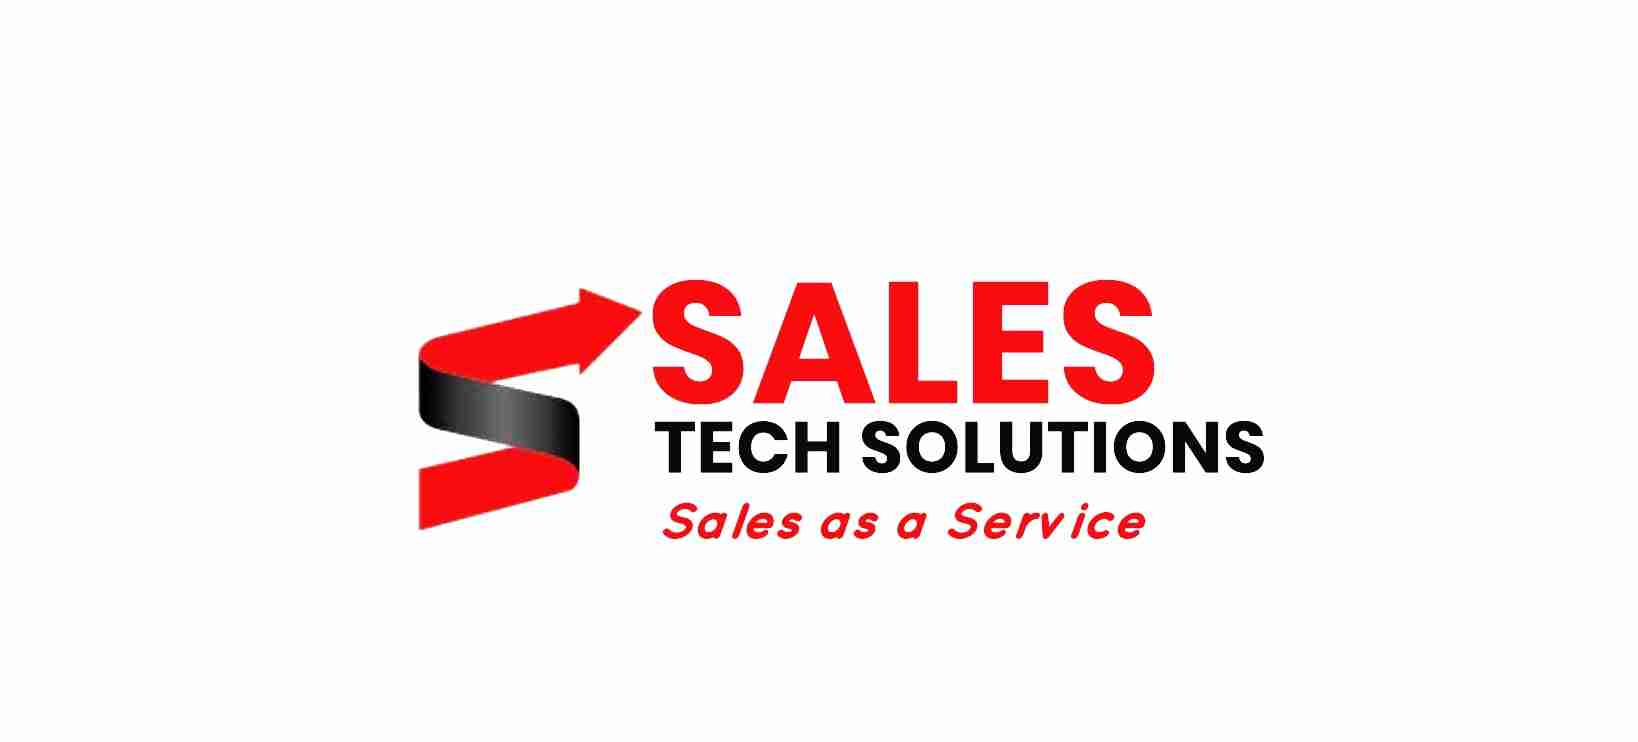 """ales Tech Solutions helps organizations grow their sales with pace and purpose. We hire and lead results-oriented """"sales as a service"""" business development teams and support them with exceptional lead generation marketing – using our proprietary territory management methodology to generate leads, build pipelines and increase sales for our clients."""